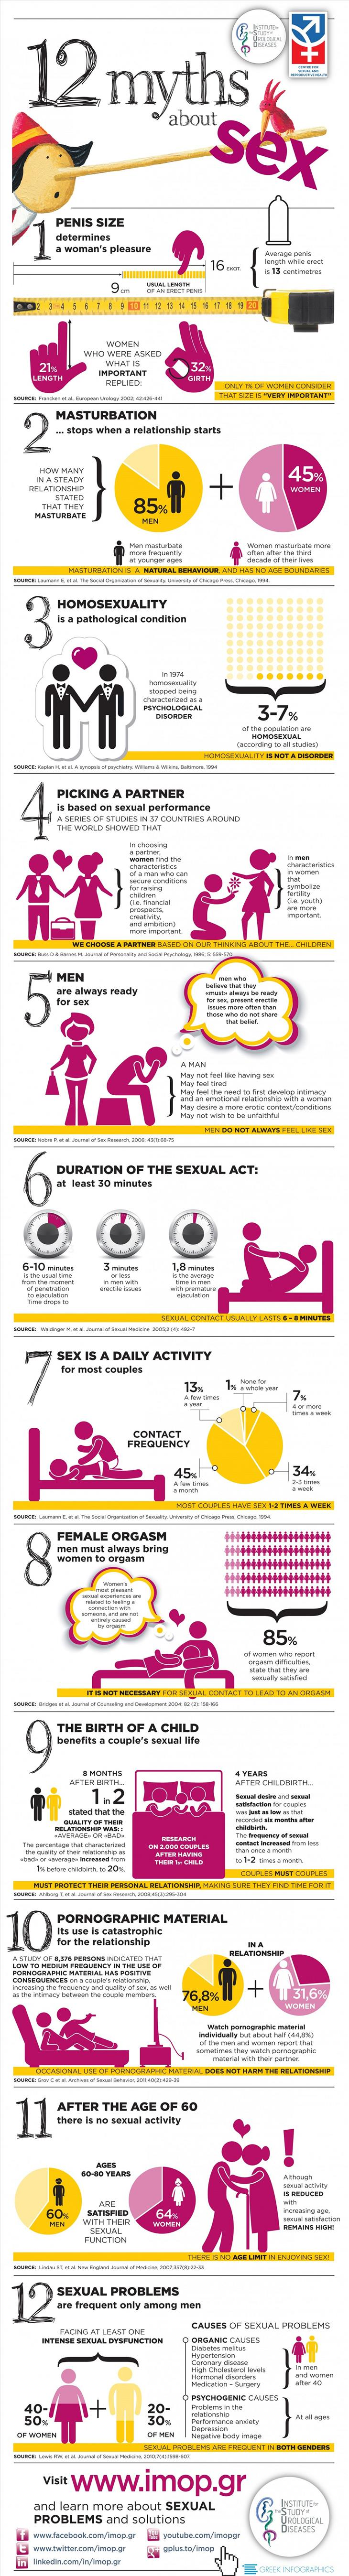 12 myths about intercourse